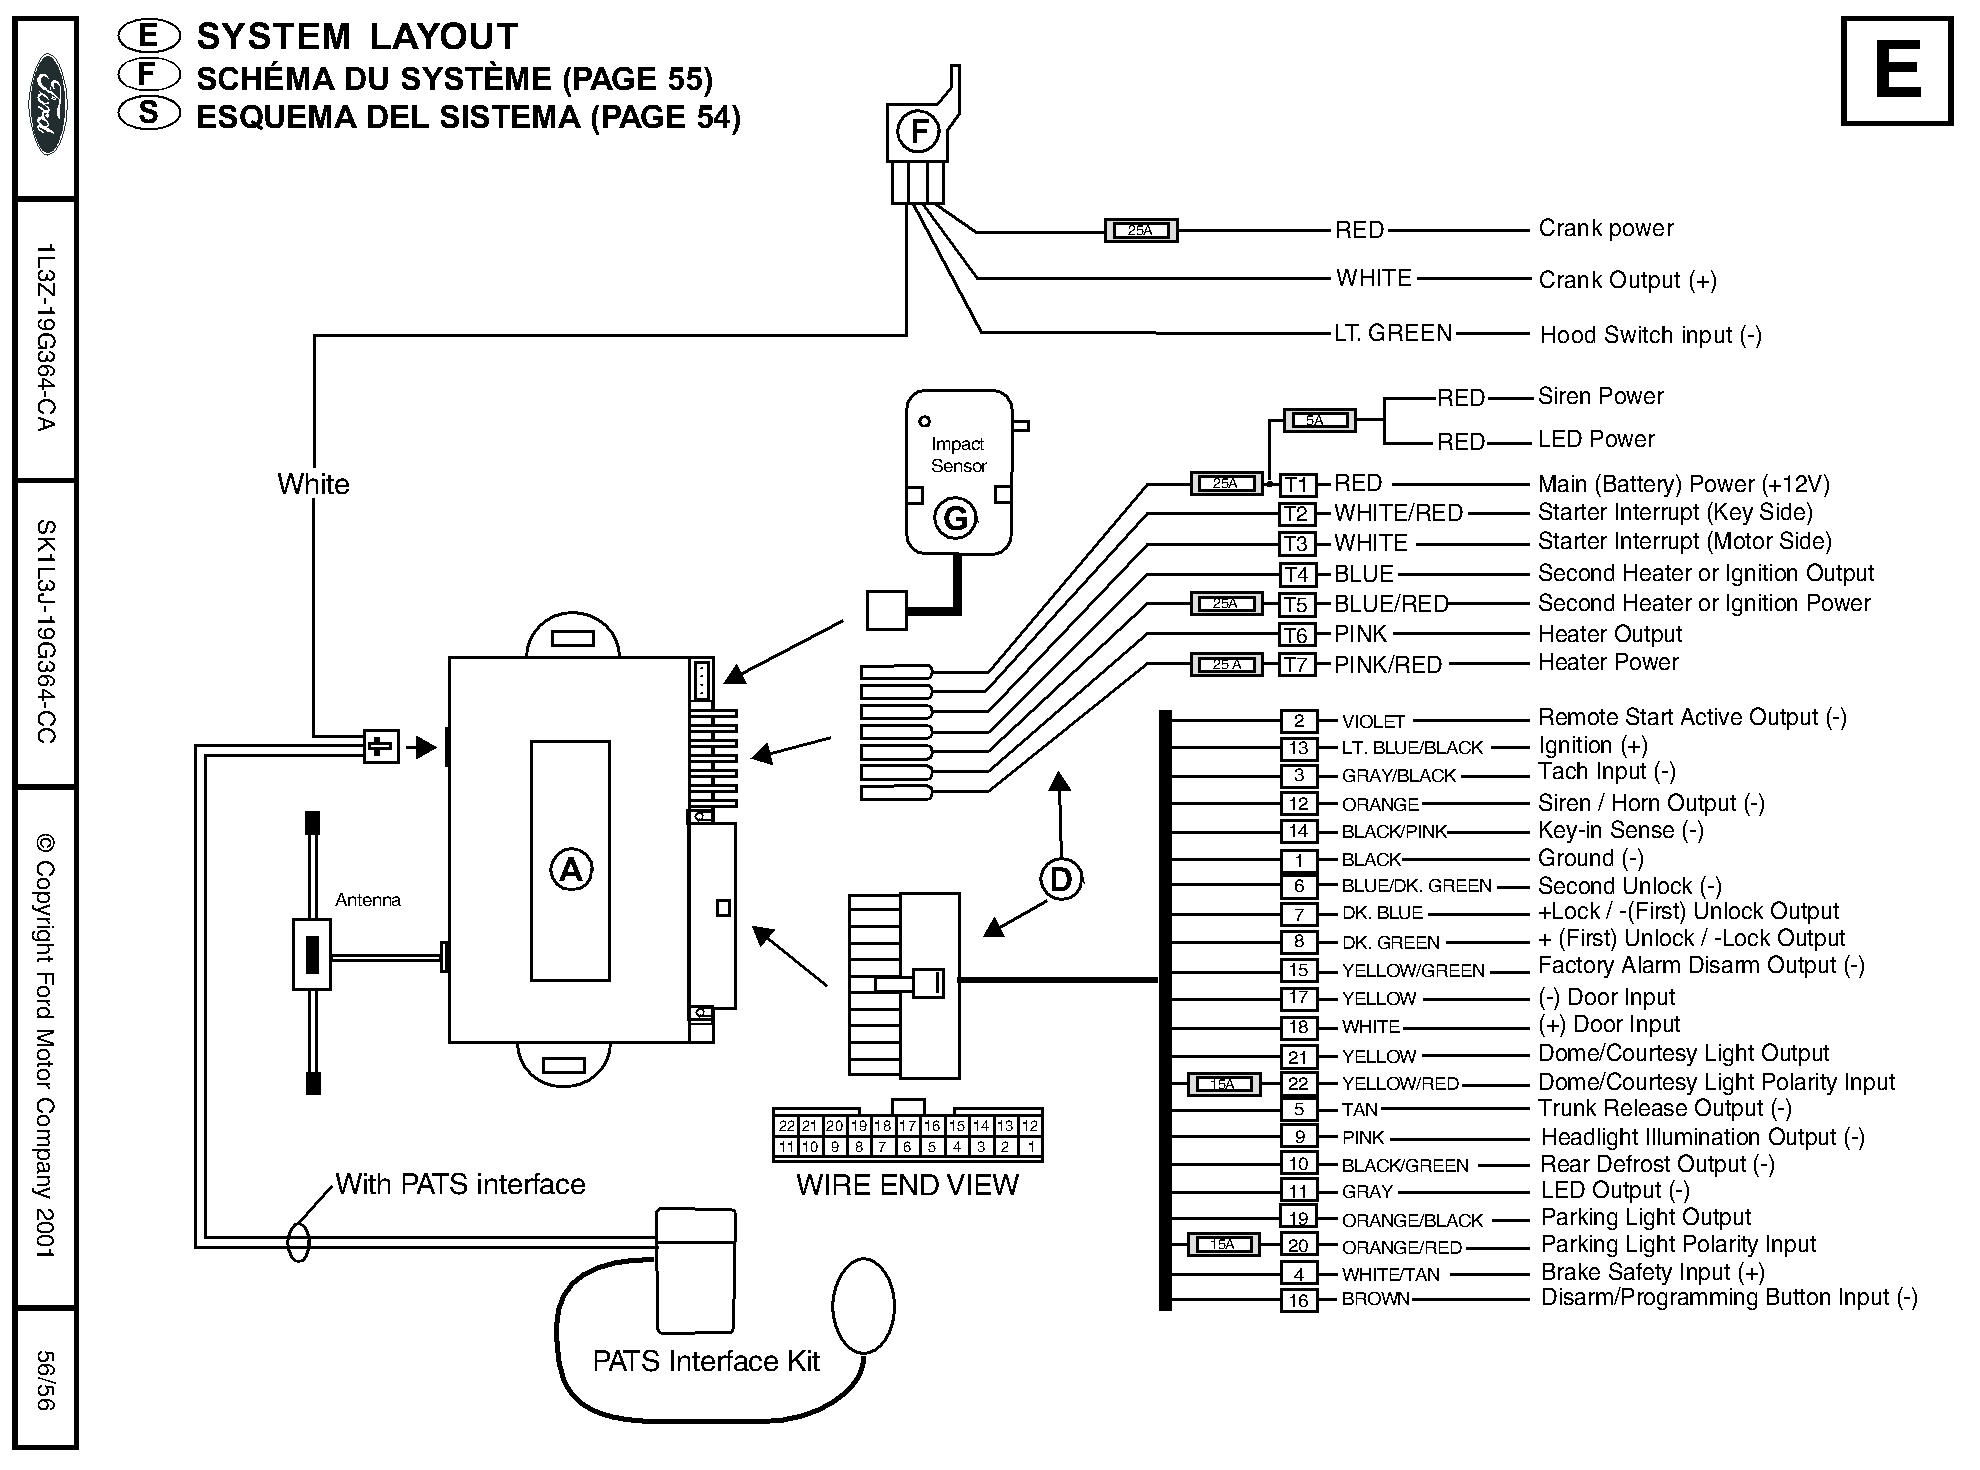 nissan sentra audio wiring harness diagram with Index on NISSAN Car Radio Wiring Connector as well Seicane S09201 Android Aftermarket Radio Navigation System For 2002 2006 Dodge Stratus Sedan With Dvd Player Obd2 Bluetooth Mirror Link Gps Touch Screen Dvr Rearview Camera Tv Video Usb Sd Wifi Steering Wheel Control additionally Nissan Juke 2013 Radio Wiring Diagram furthermore Ford Stereo Wiring Harness Diagram further Hyundai.